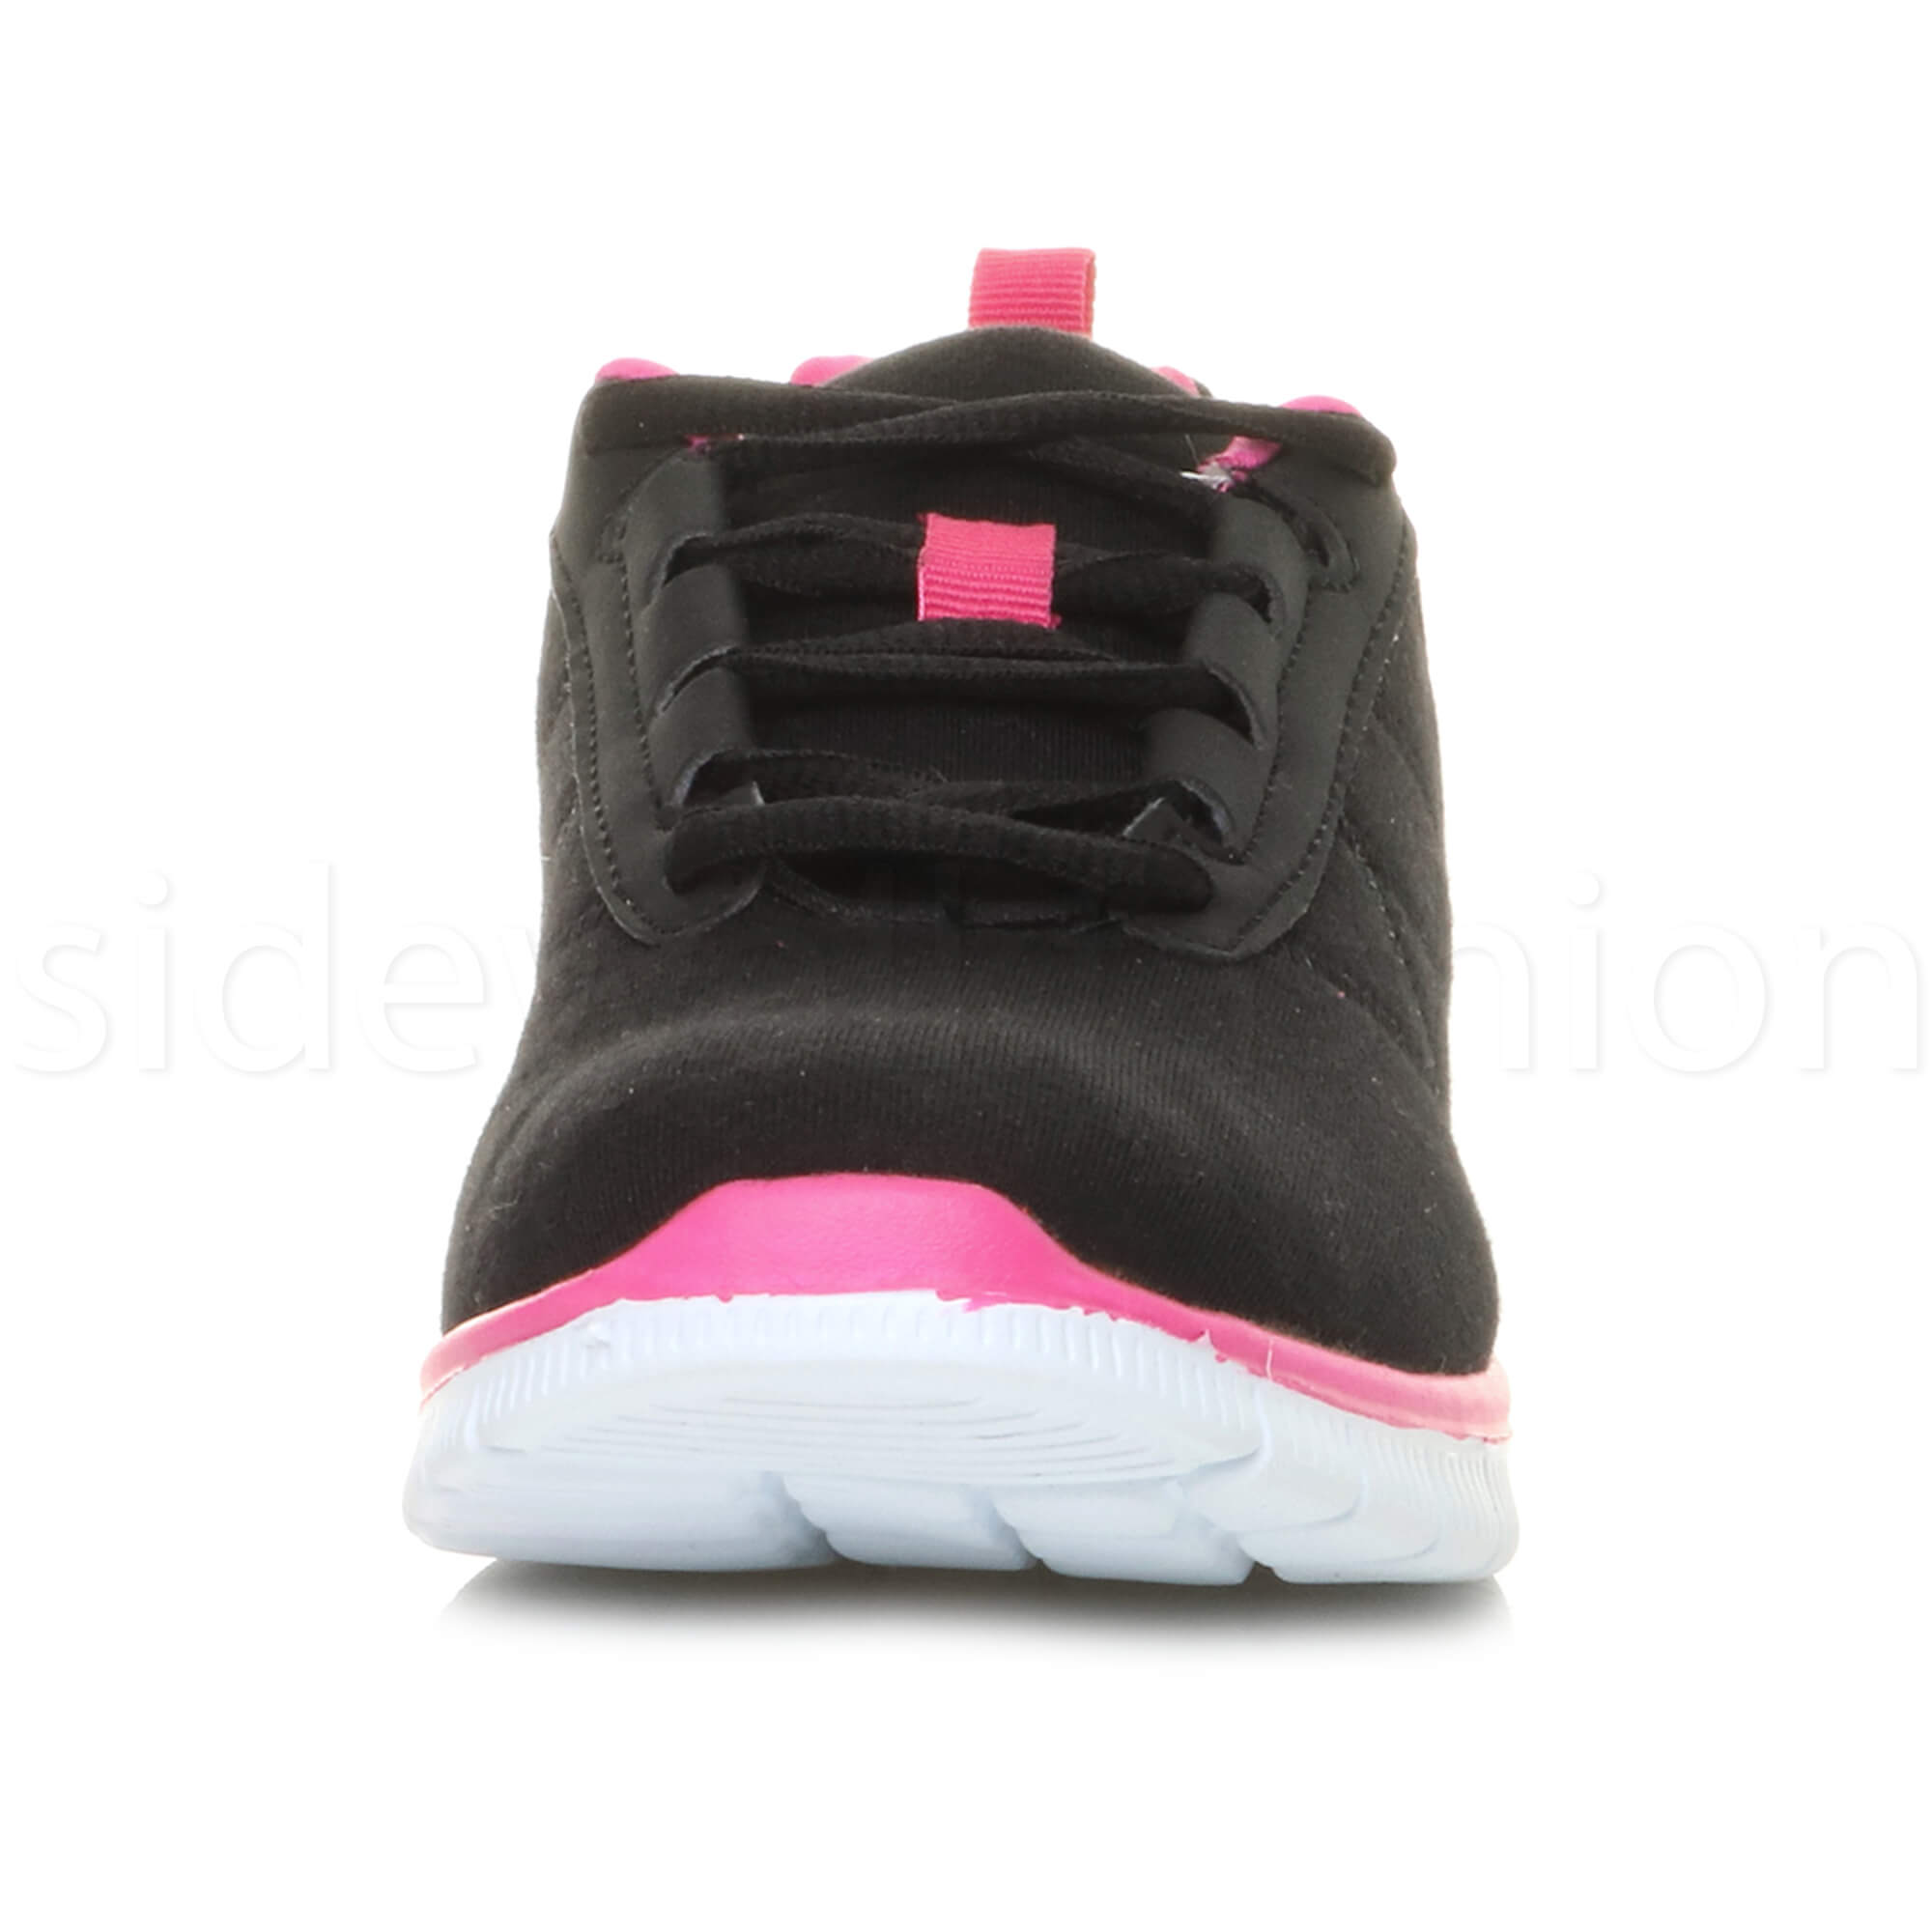 Womens-ladies-comfort-memory-foam-lace-up-trainers-activewear-sneakers-gym-shoes thumbnail 19